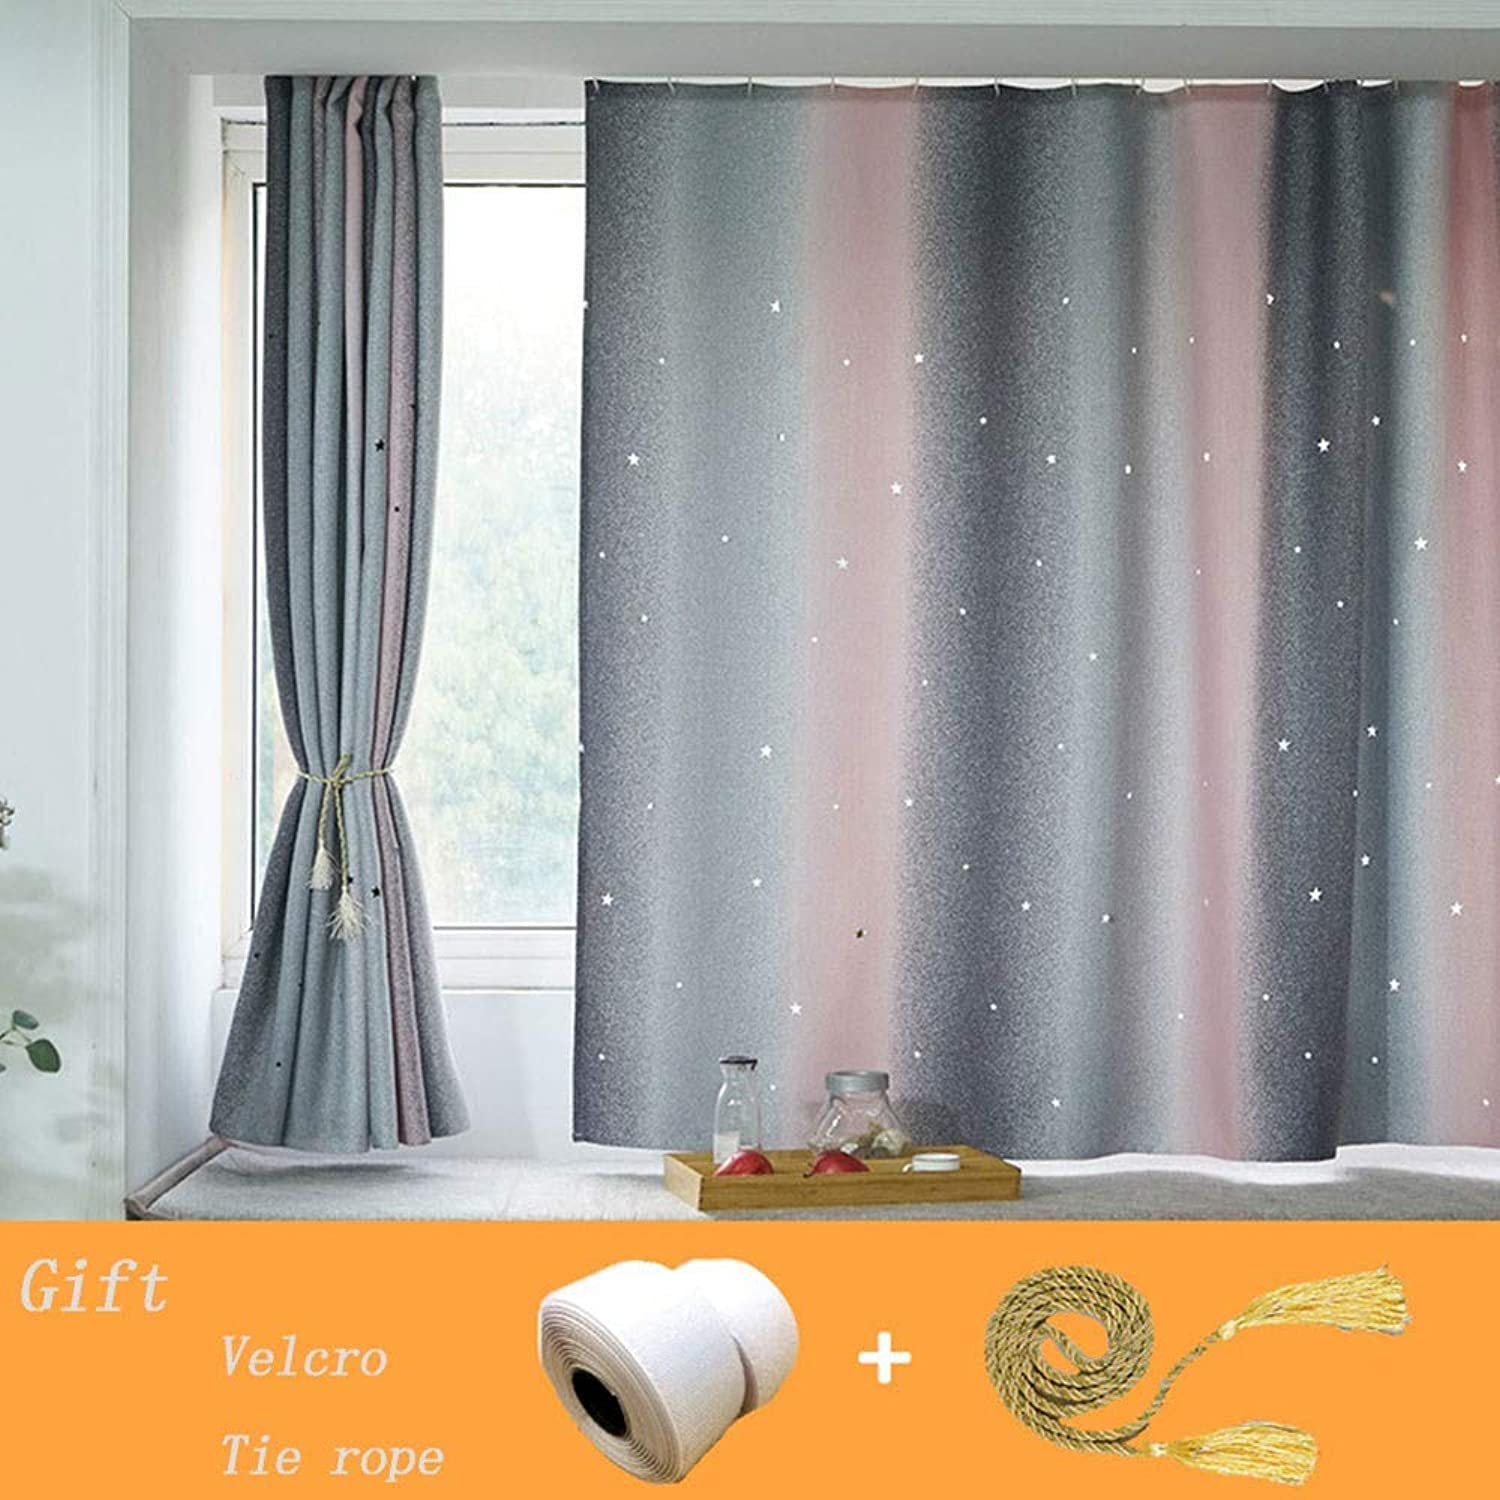 Velcro Curtain Thermal Curtains for Home Decoration Top Draperies Kitchen Blackout Thermal Insulated Window Treatment for Room Darkening Curtains